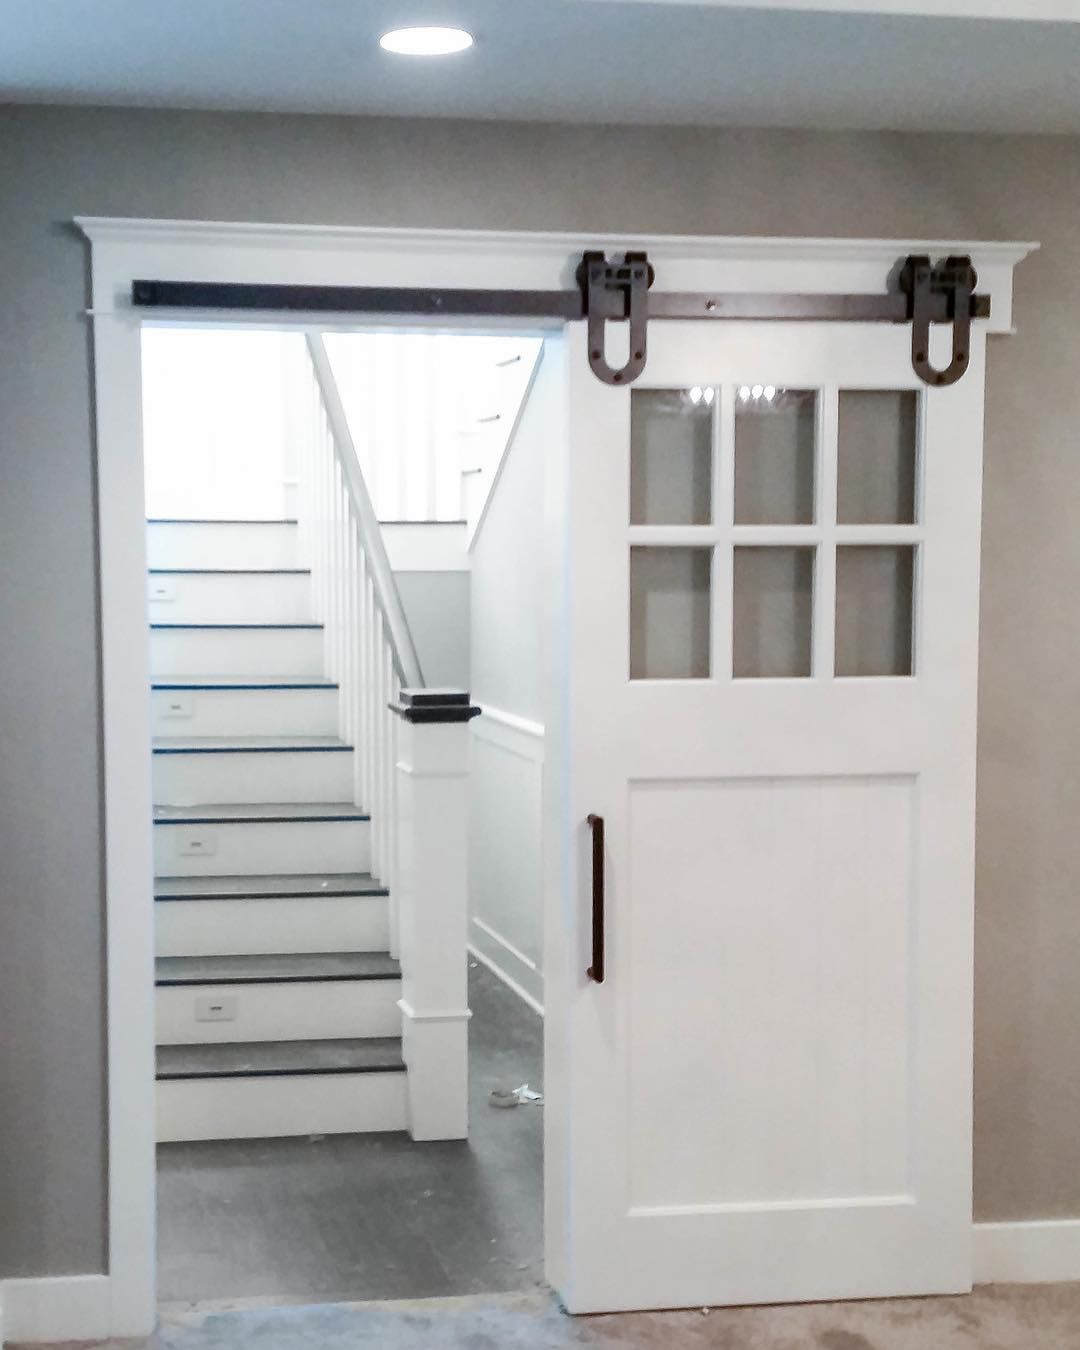 adding the barn door at the bottom of the staircase is a great